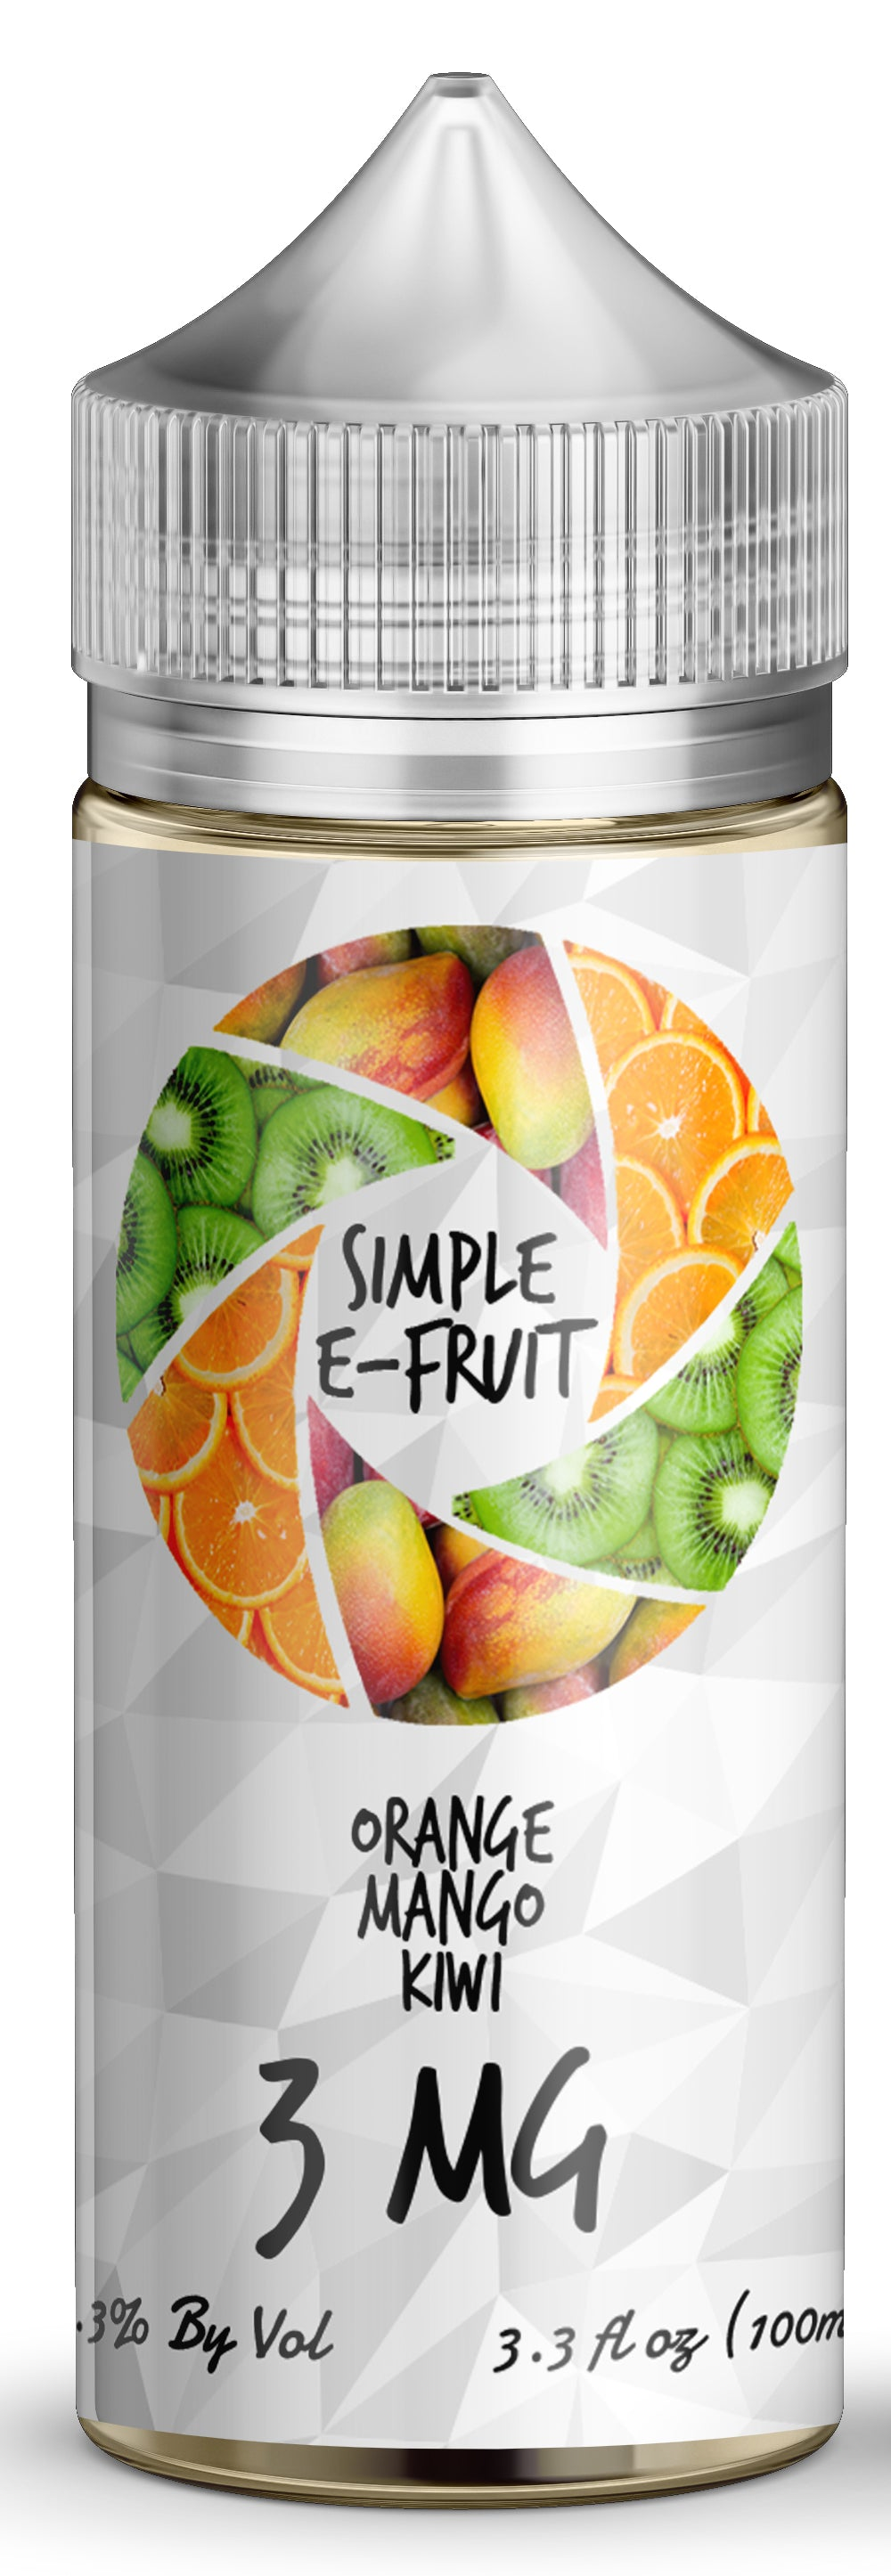 Simple E-Fruit Orange Mango Kiwi 100ml